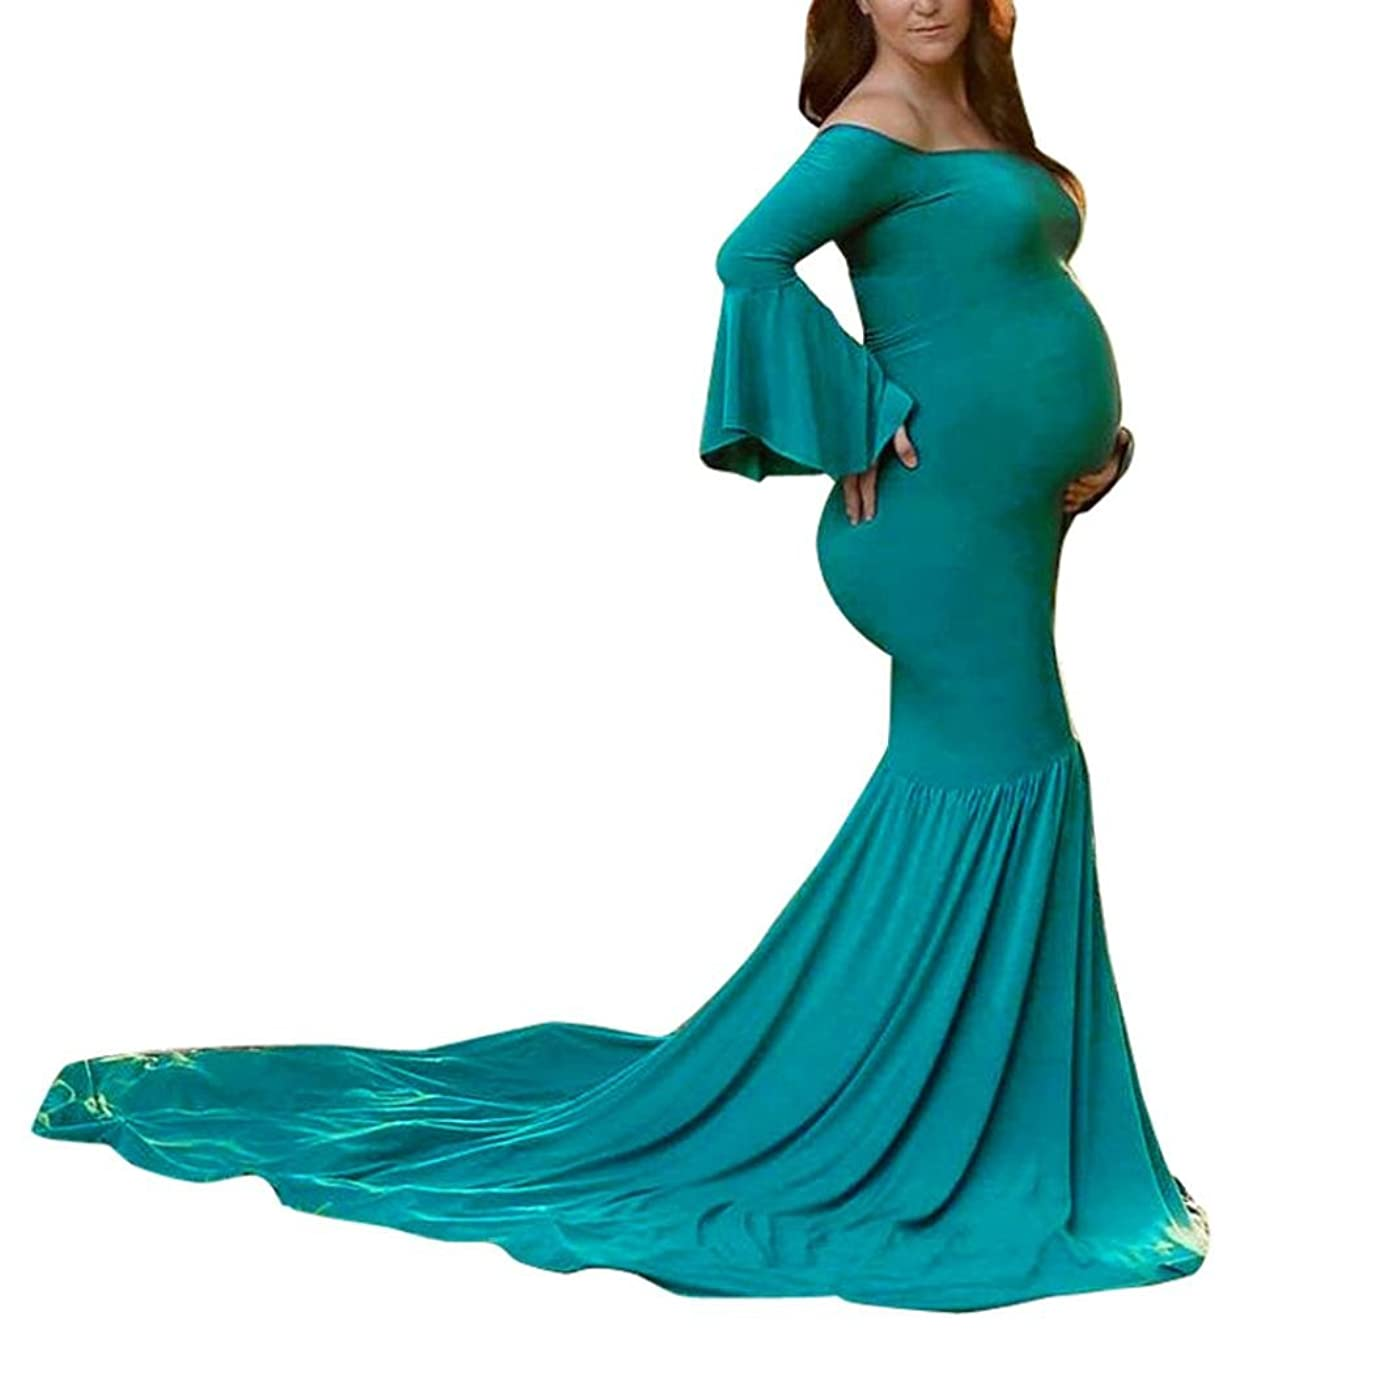 ManxiVoo Pregnant Womens Off Shoulder Dress Sexy Photography Props Flare Sleeve Long Dress Maternity Gown